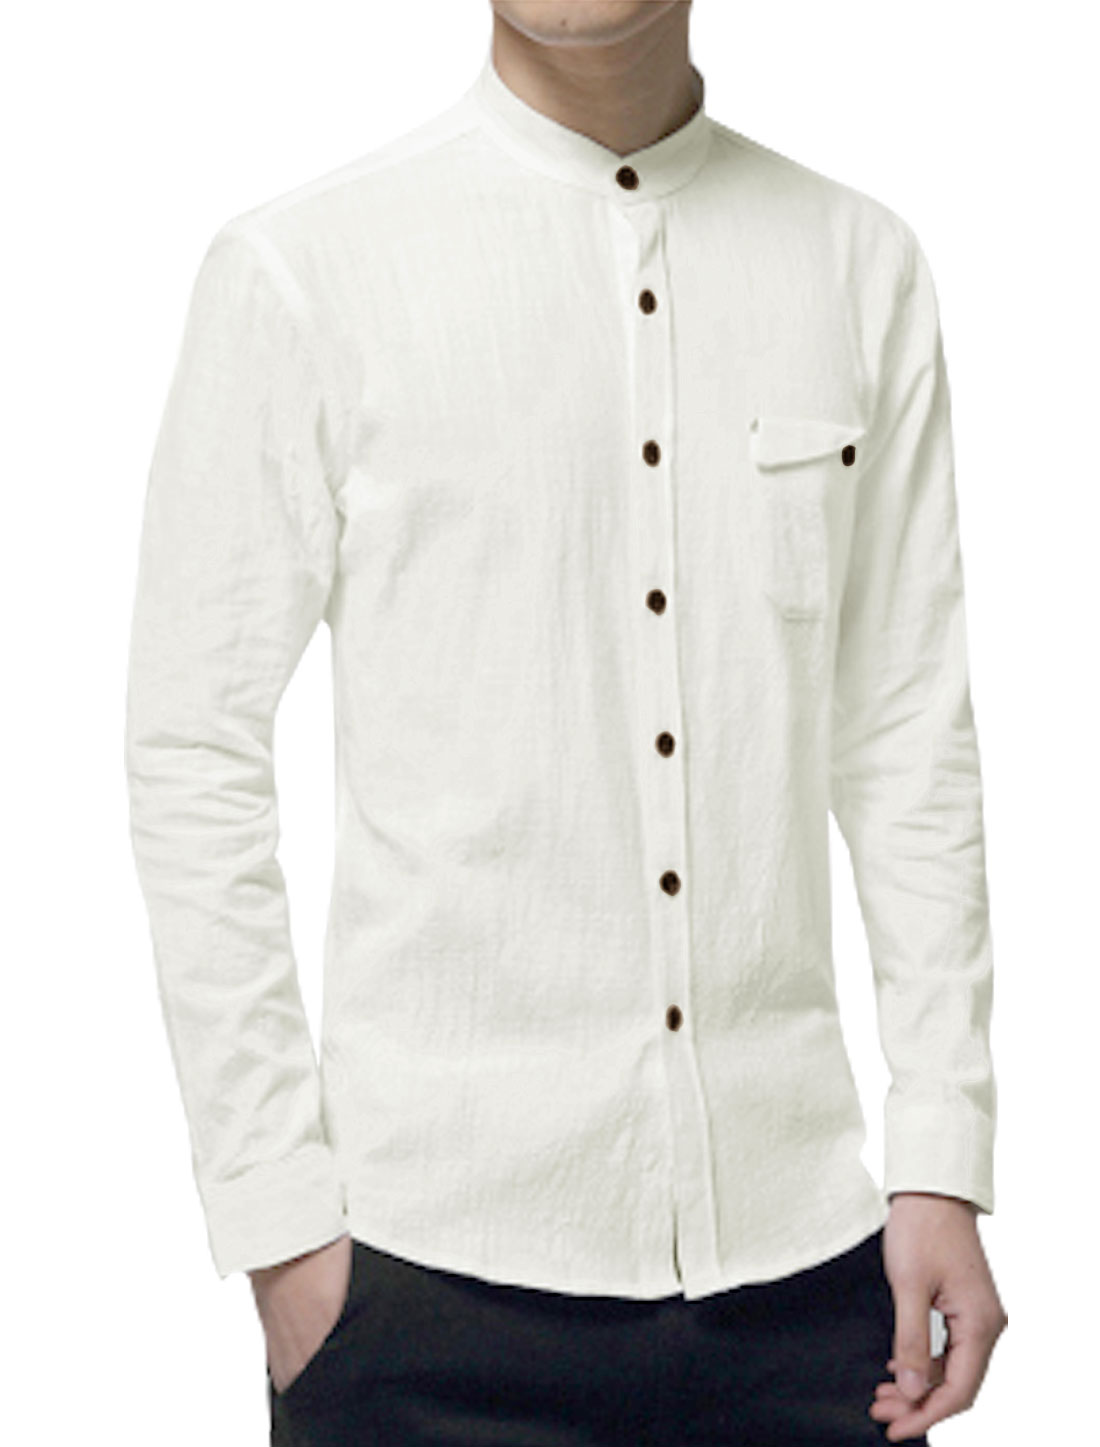 Men Collared Long Sleeves Chest Pocket Slim Fit Shirt White M